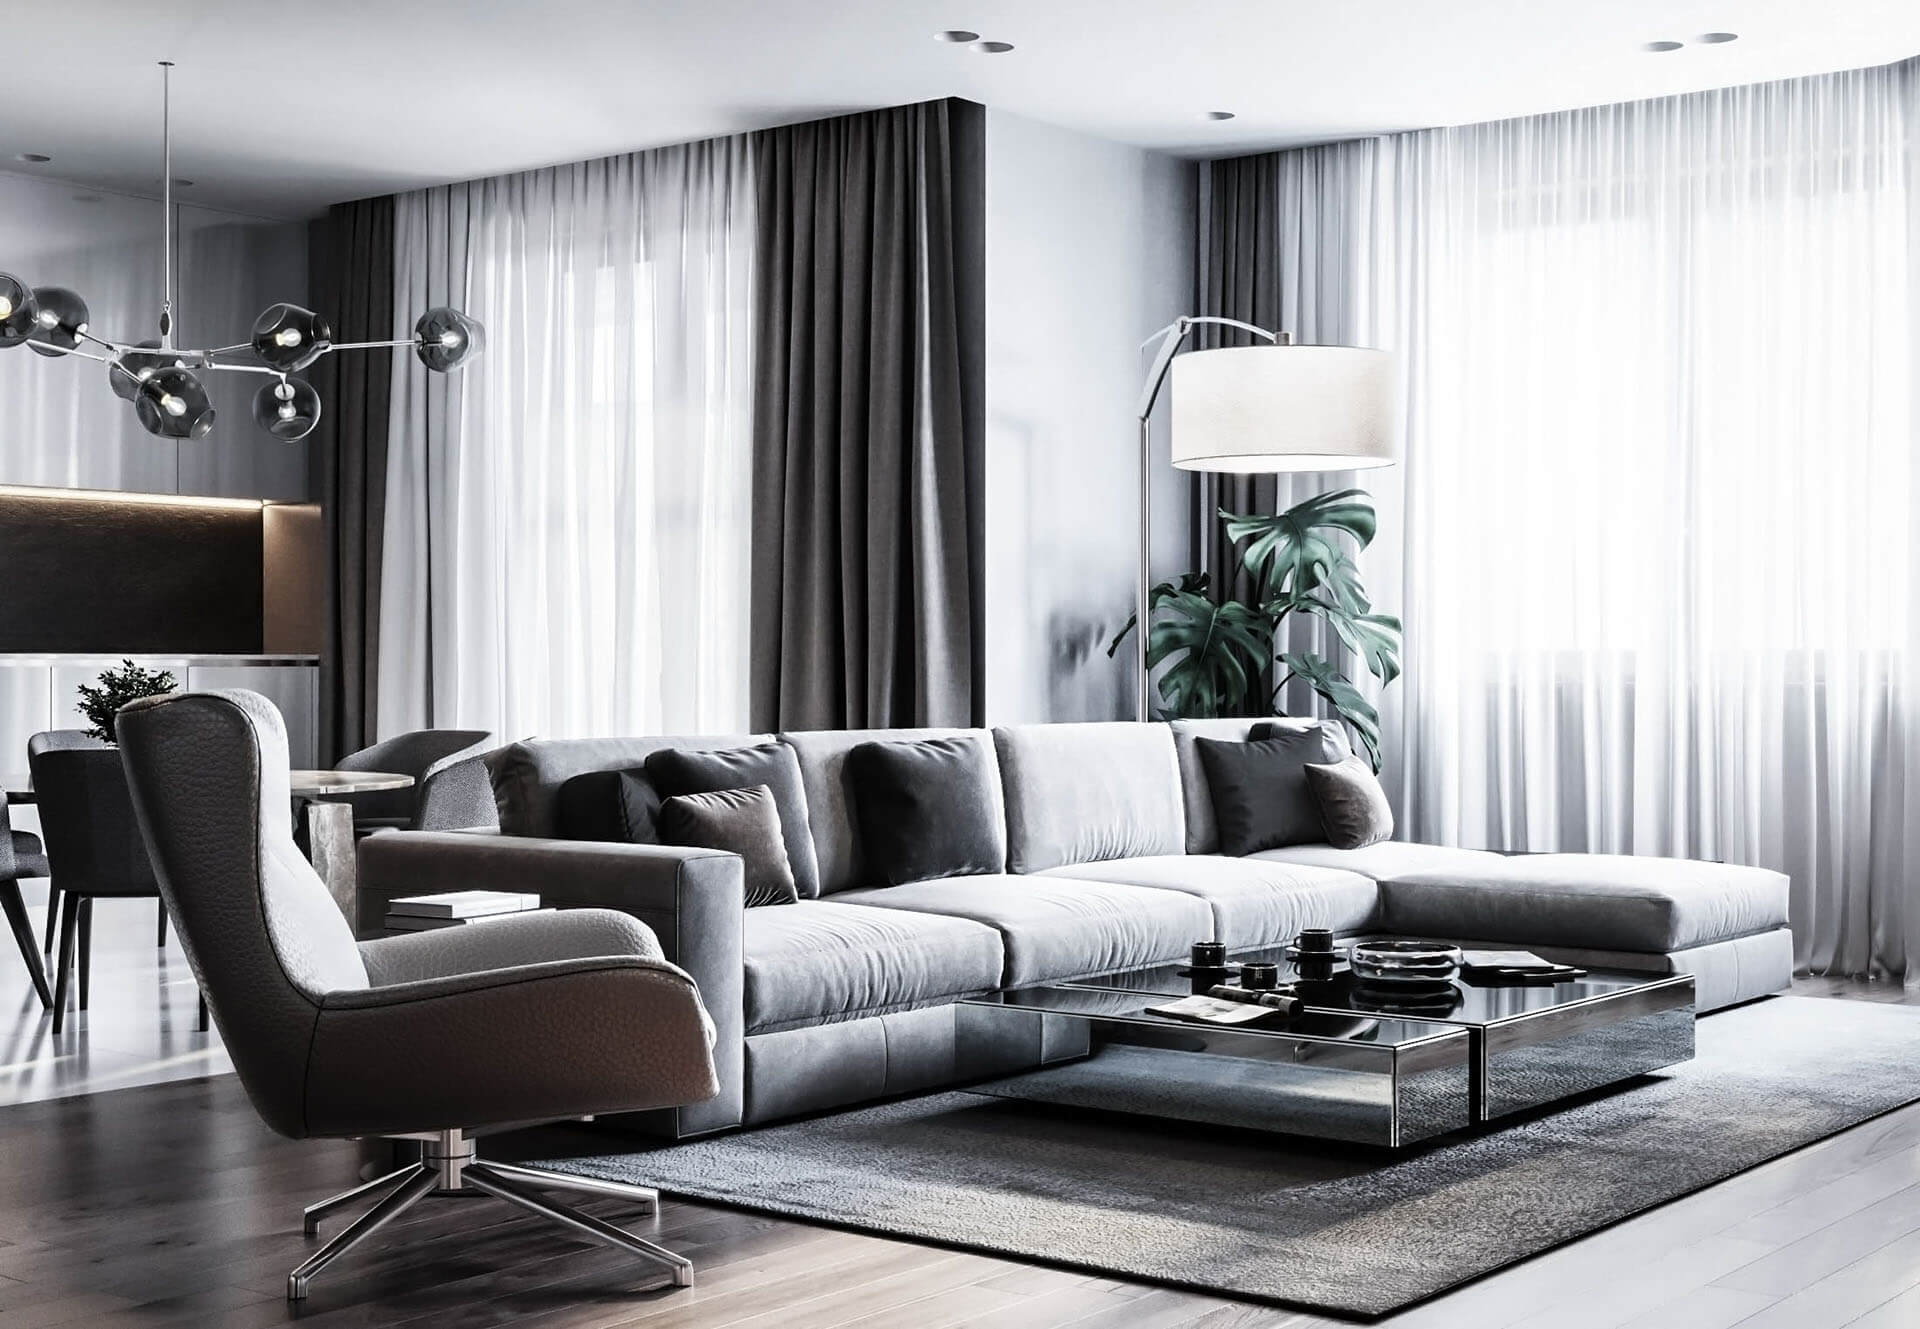 Dubrovka apartment sideboard living room couch - cgi visualization